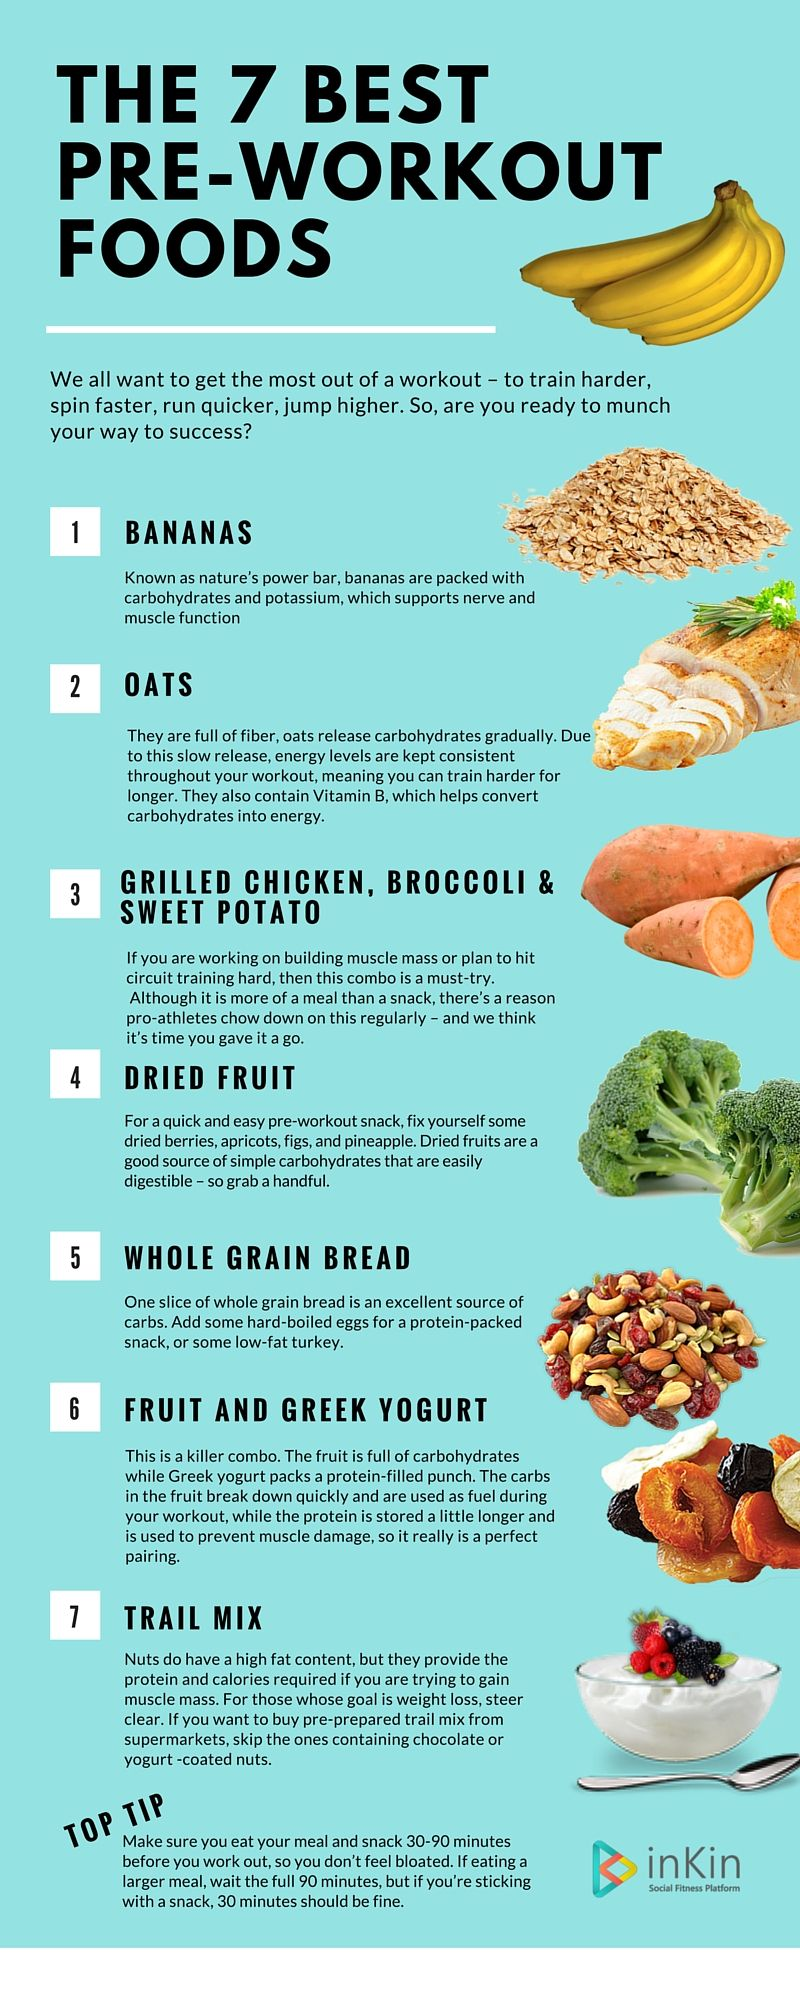 Not Sure How To Eat For Fitness Quick Easy Guide To Pre Workout Meals Https Www Inkin Com Blog En The Best Pre Workout Food Pre Workout Food Workout Food